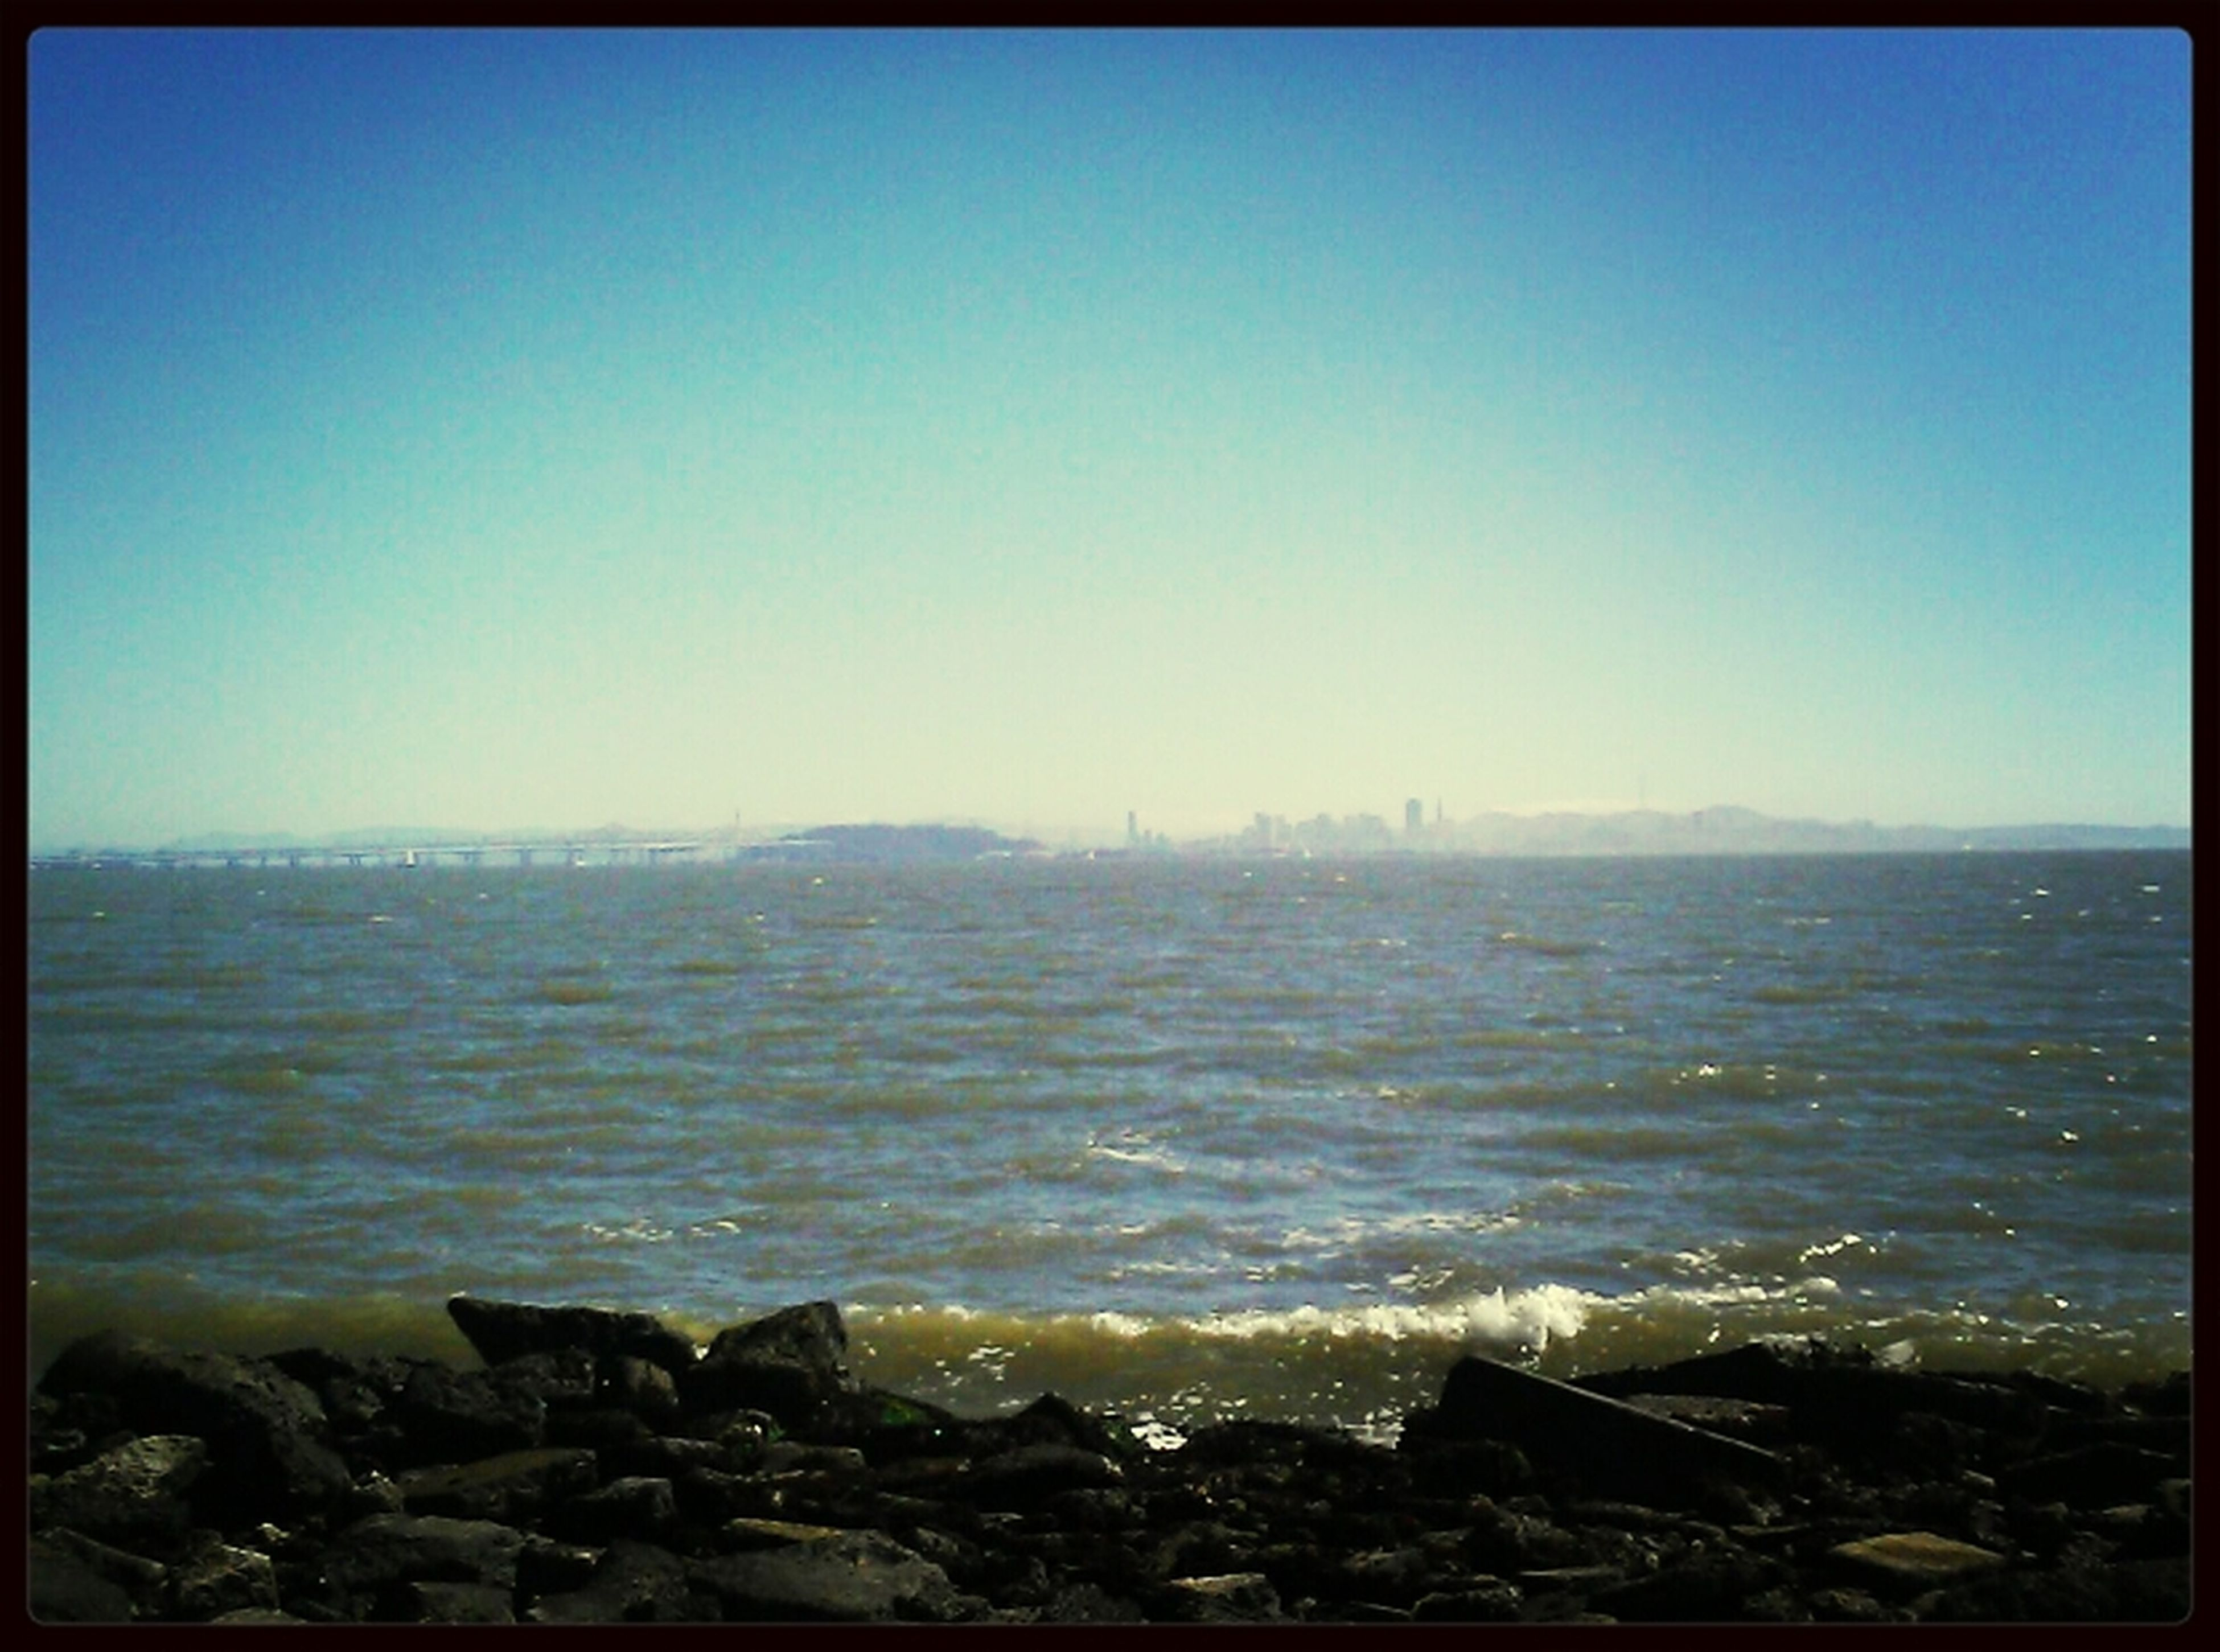 enjoying the bay on a gorgeous day. Walking Around Skyline The Bay Oceans